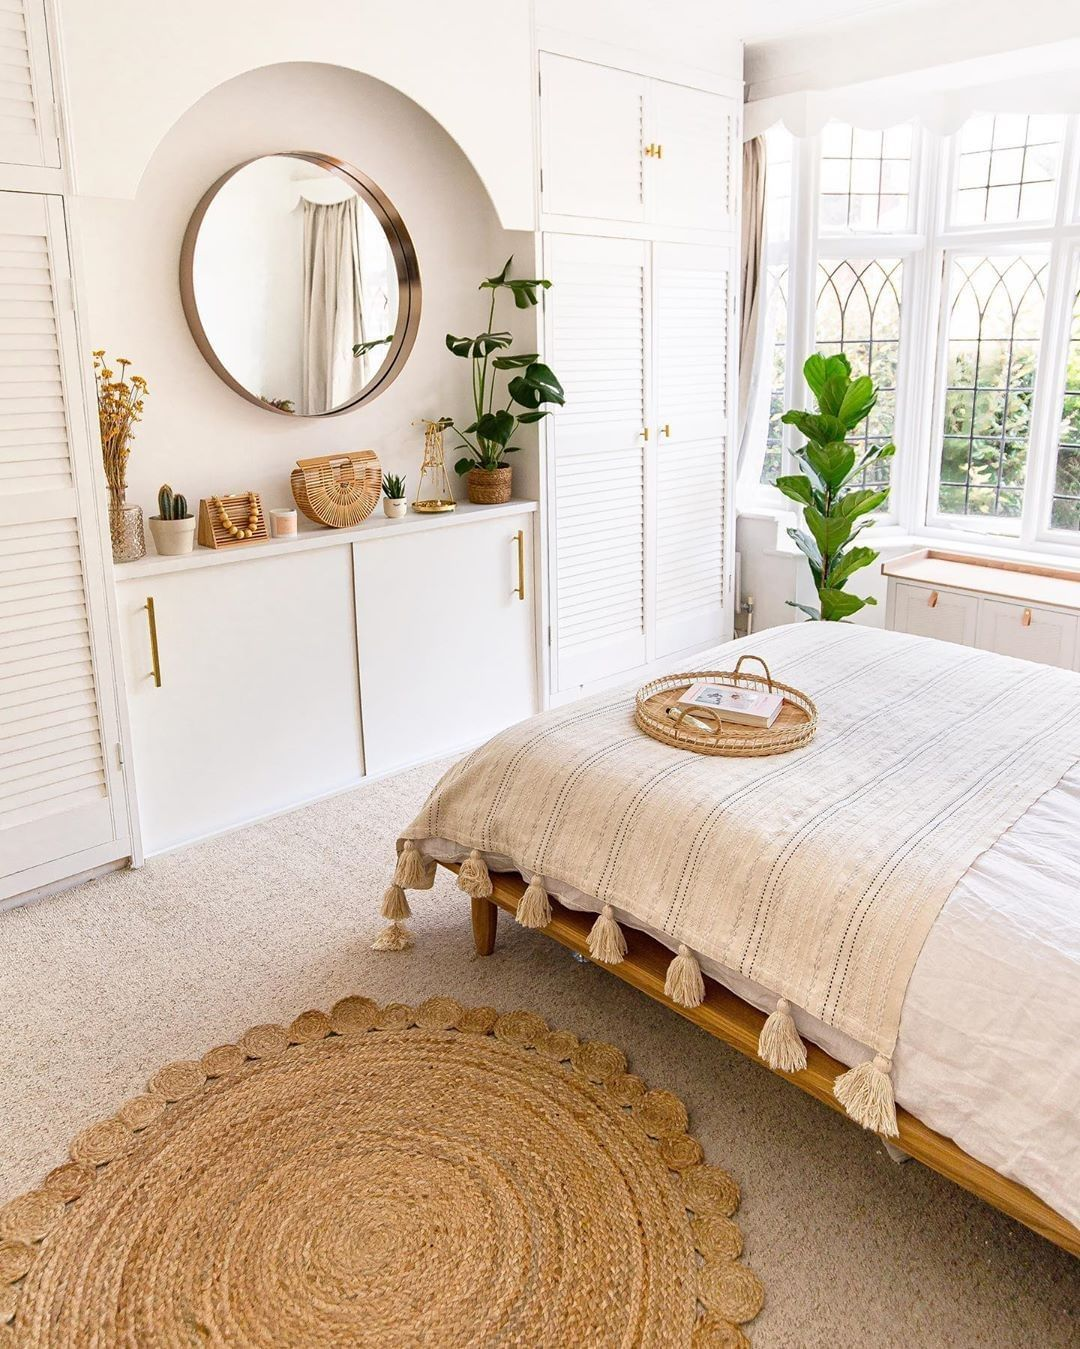 Extra Space Storage On Instagram Gorgeous Minimalist Bedroom Not Too Much Or Too Little Minimalist Bedroom Design Bedroom Interior Interior Design Bedroom